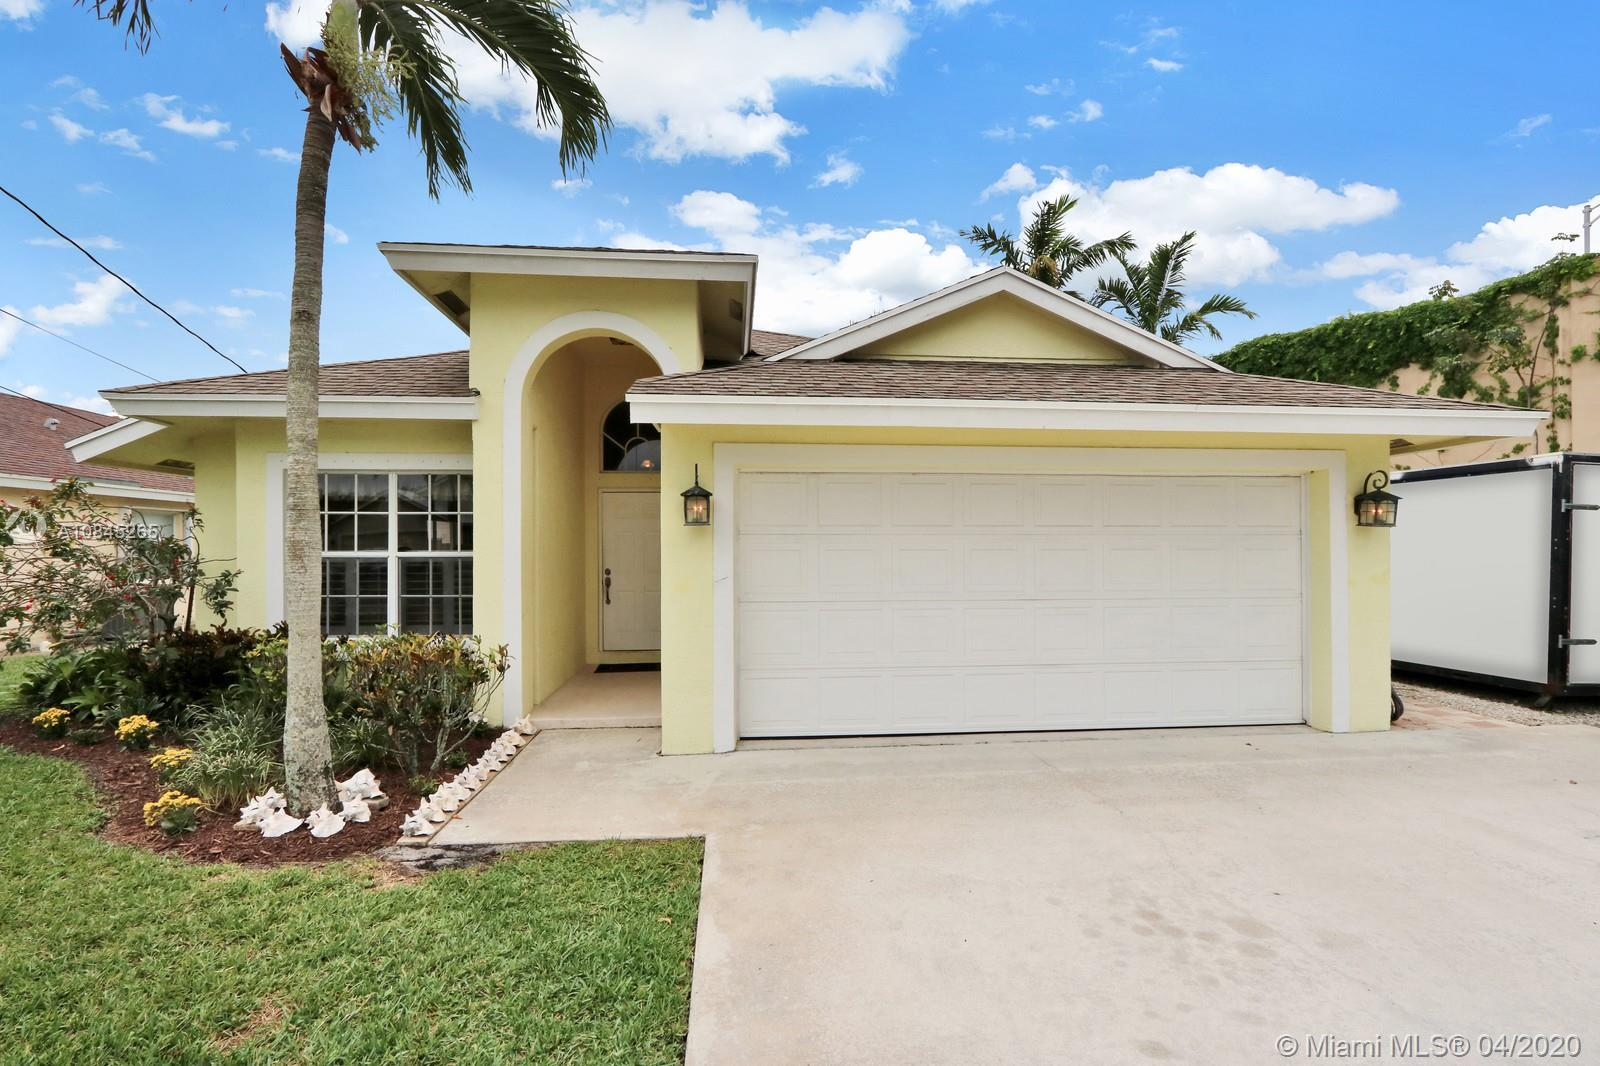 A rare find in the heart of Jupiter. This beautiful home sits on a double lot, in the Heights of Jup